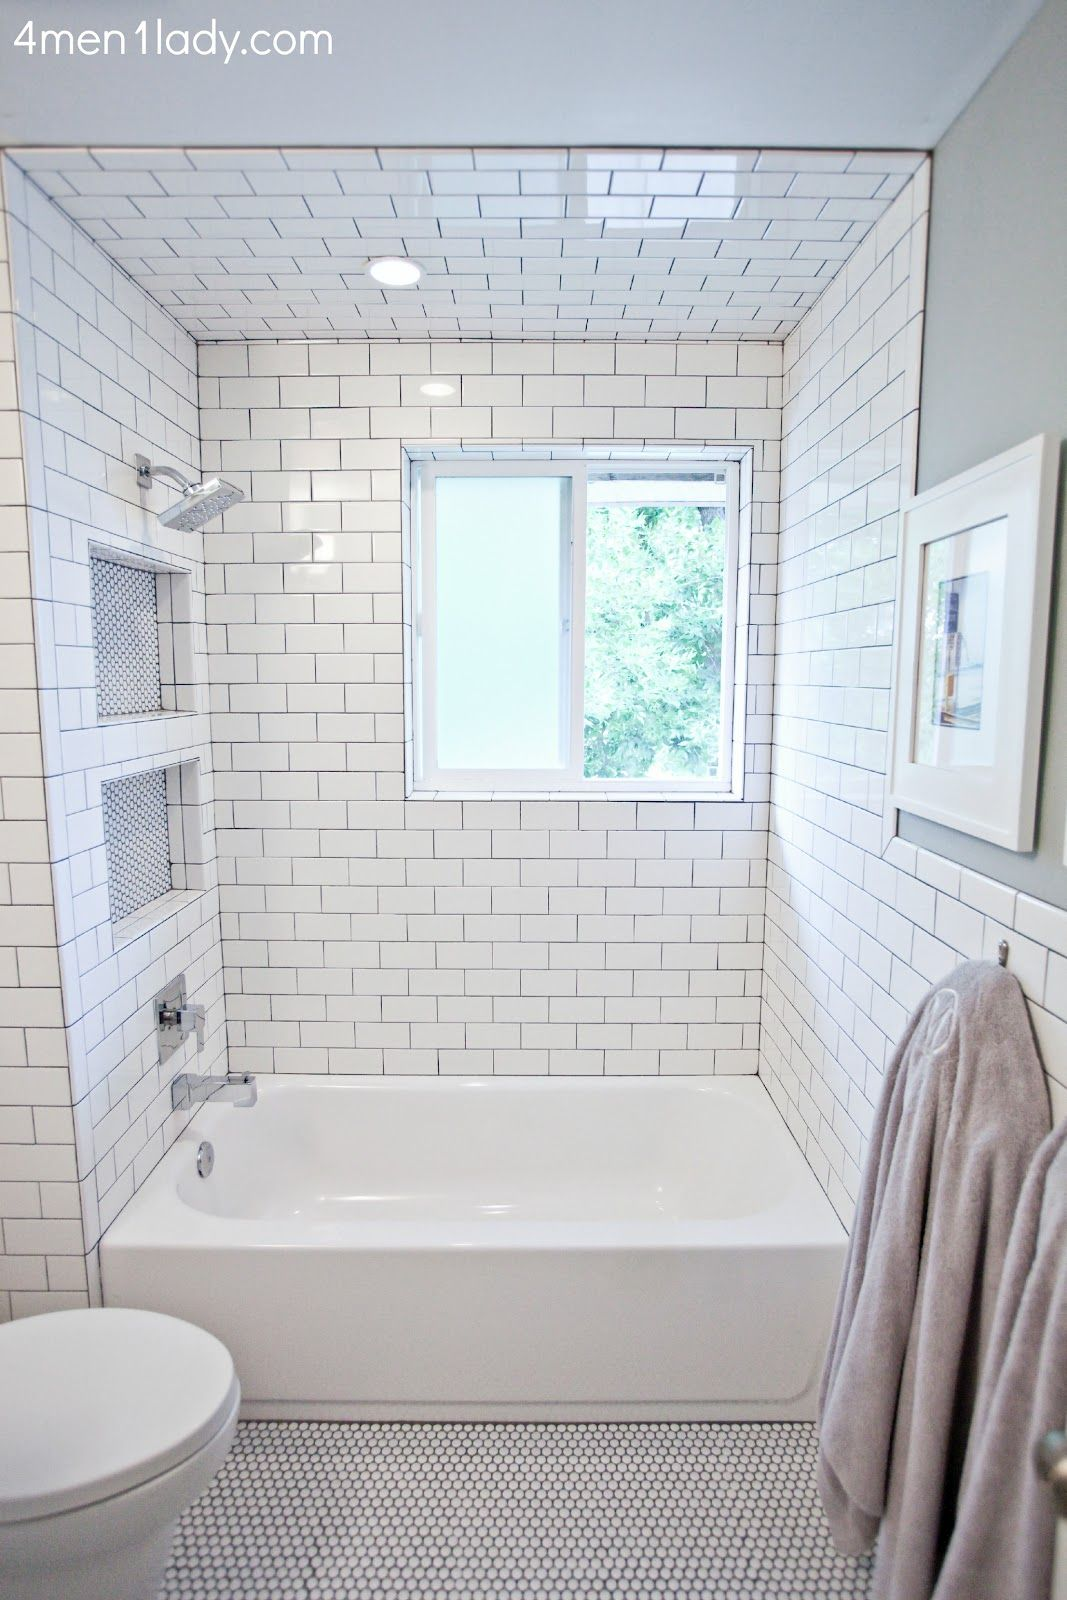 Main bath before and after\'s. - 4 Men 1 Lady | Finishes for 3611 Old ...